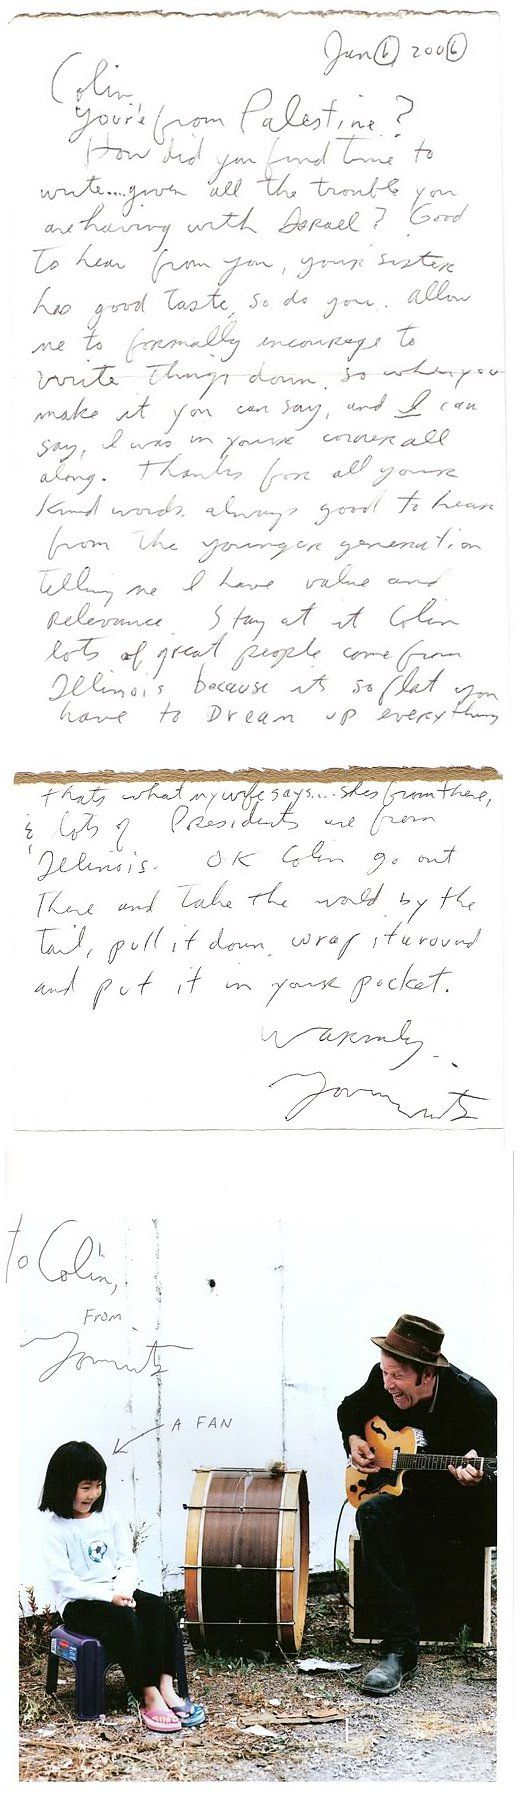 As if music wasn't enough. This letter, from no other than Mr. Tom Waits.